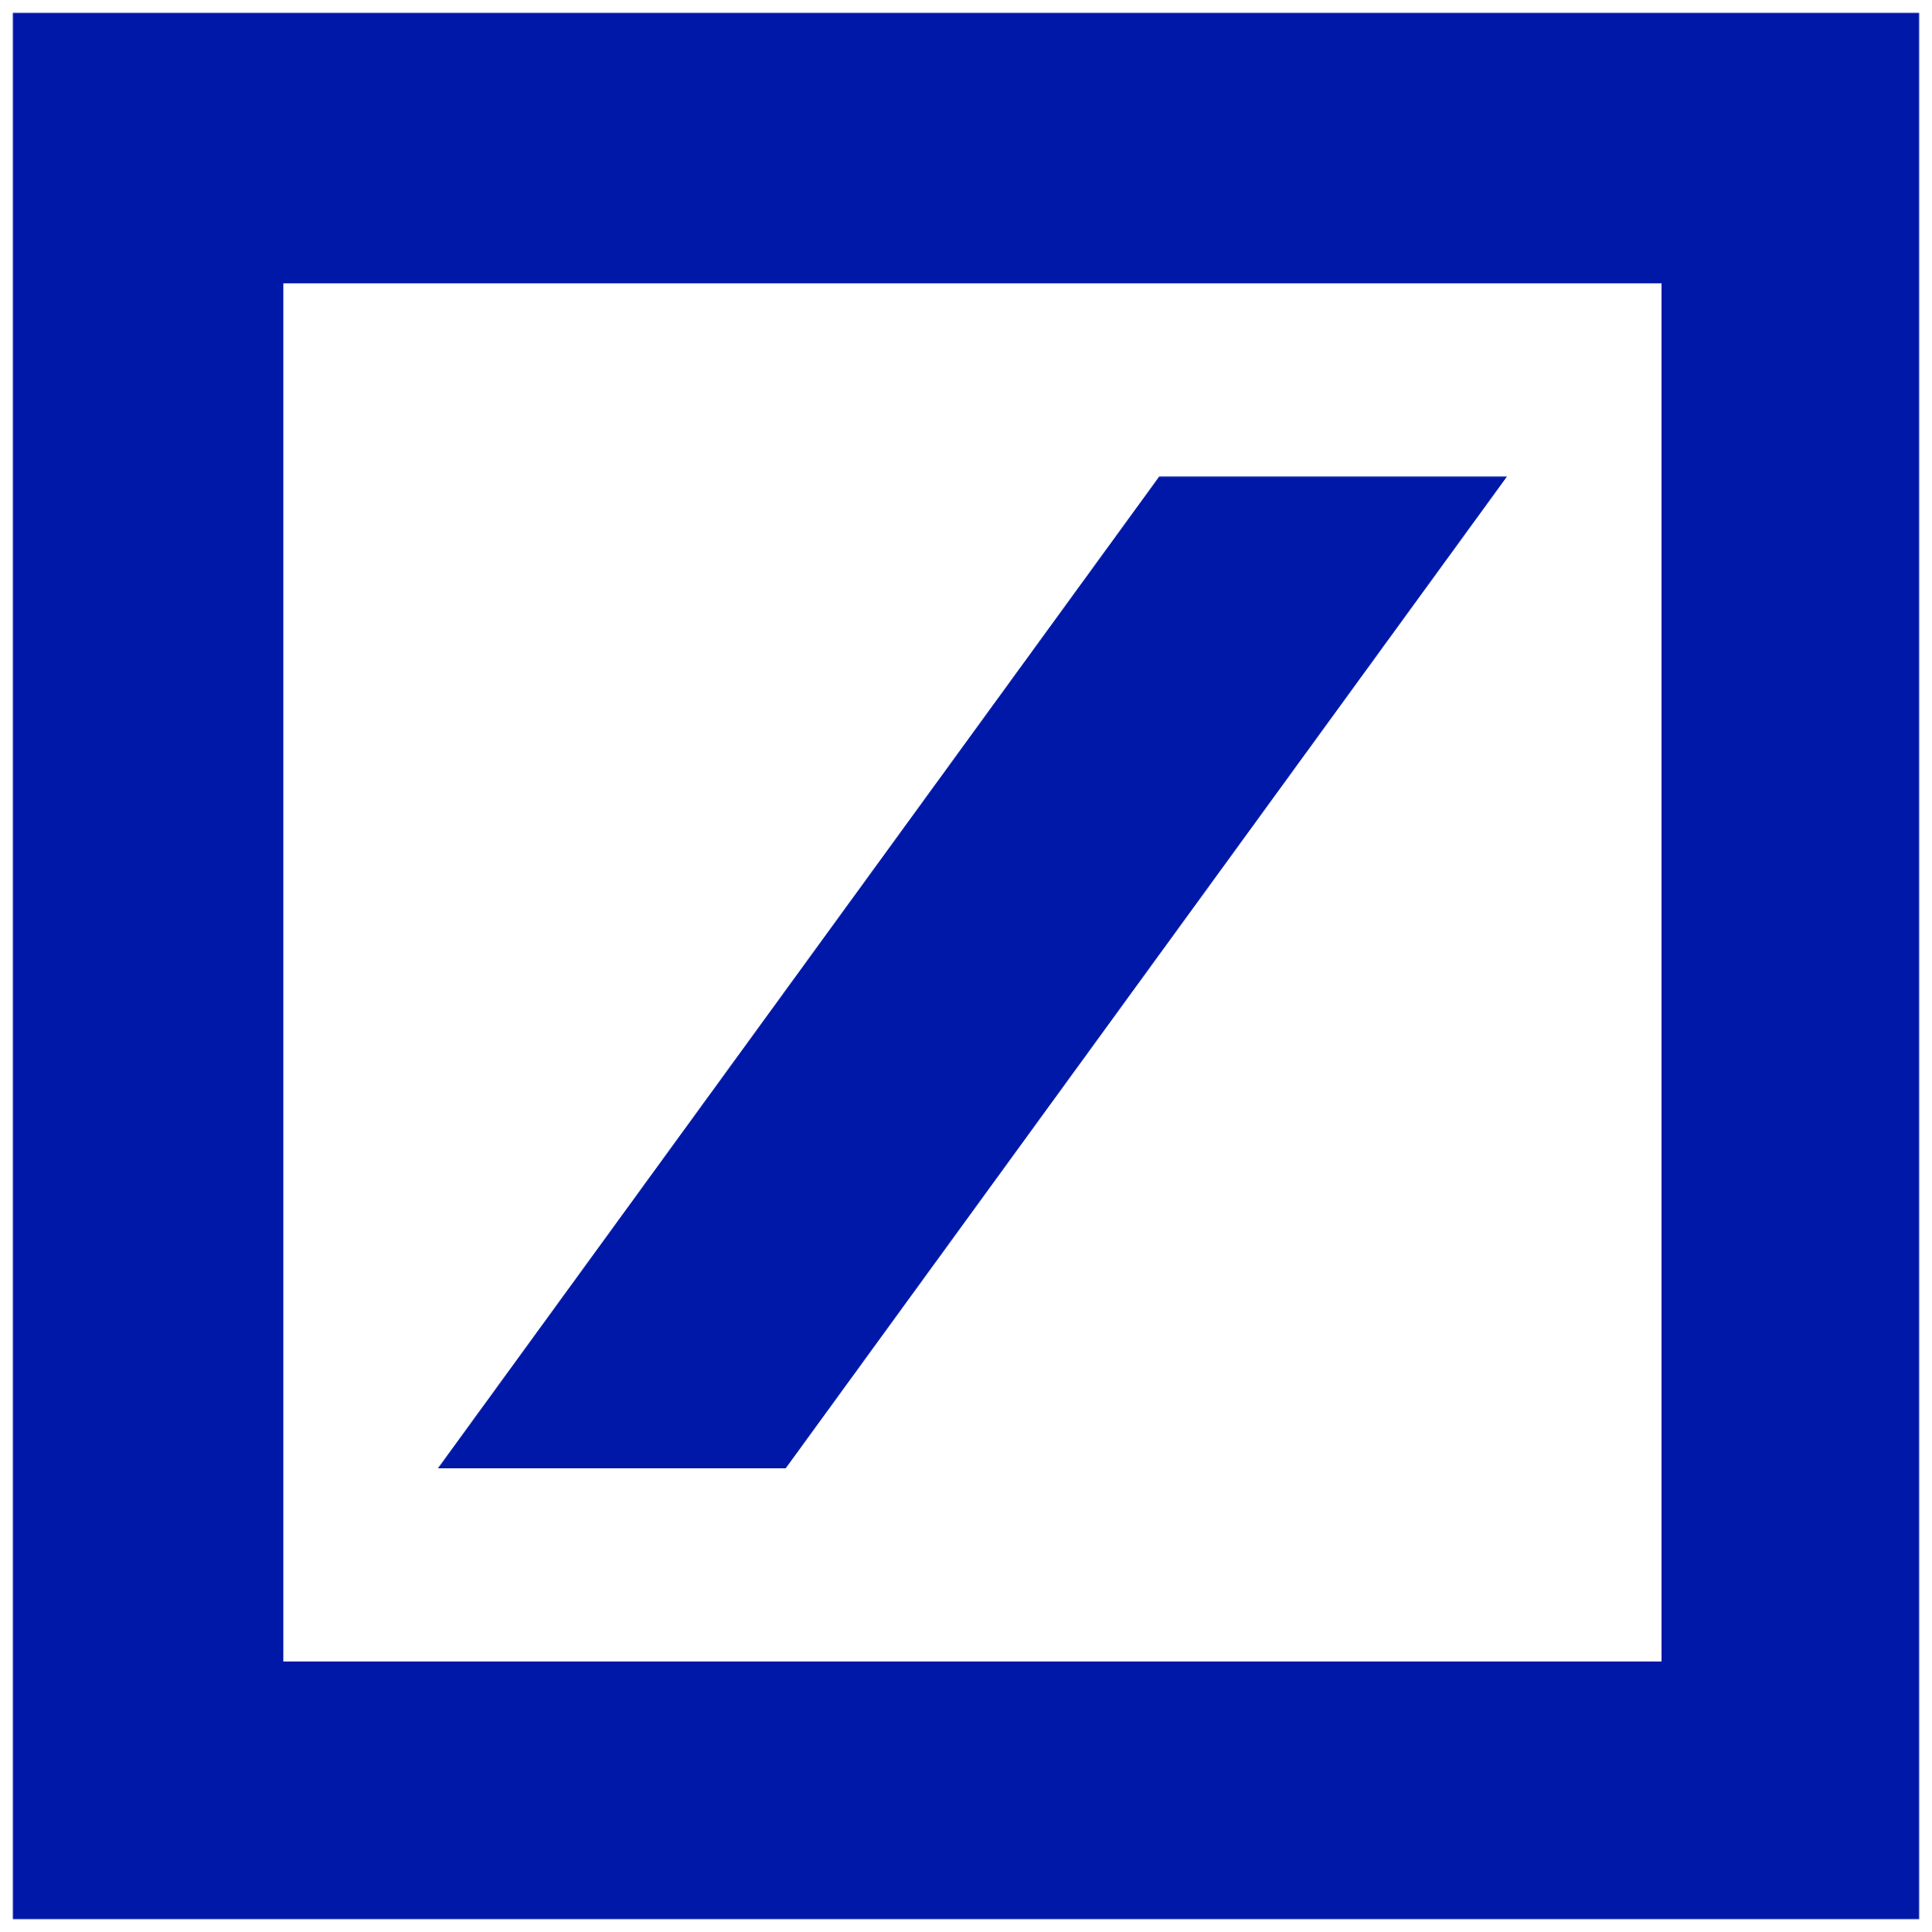 Deutsche Bank Logo - File:Deutsche Bank logo without wordmark.svg - Wikimedia Commons